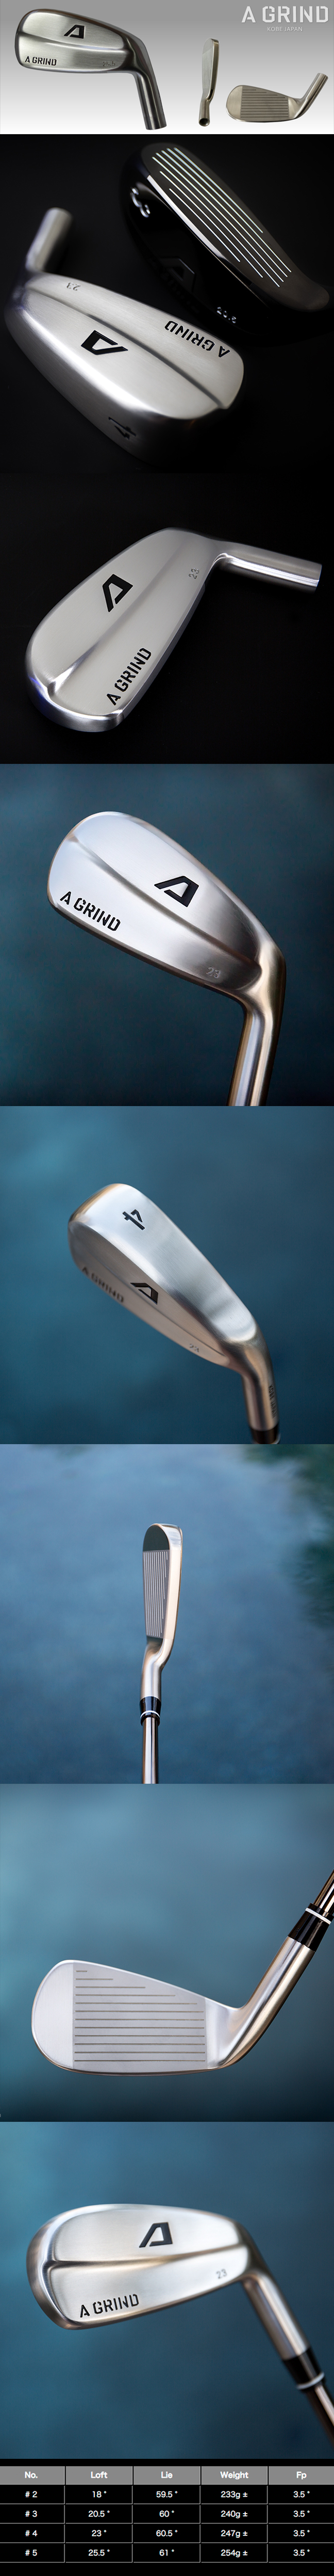 A-Grind Golf Driving Iron Hybrid